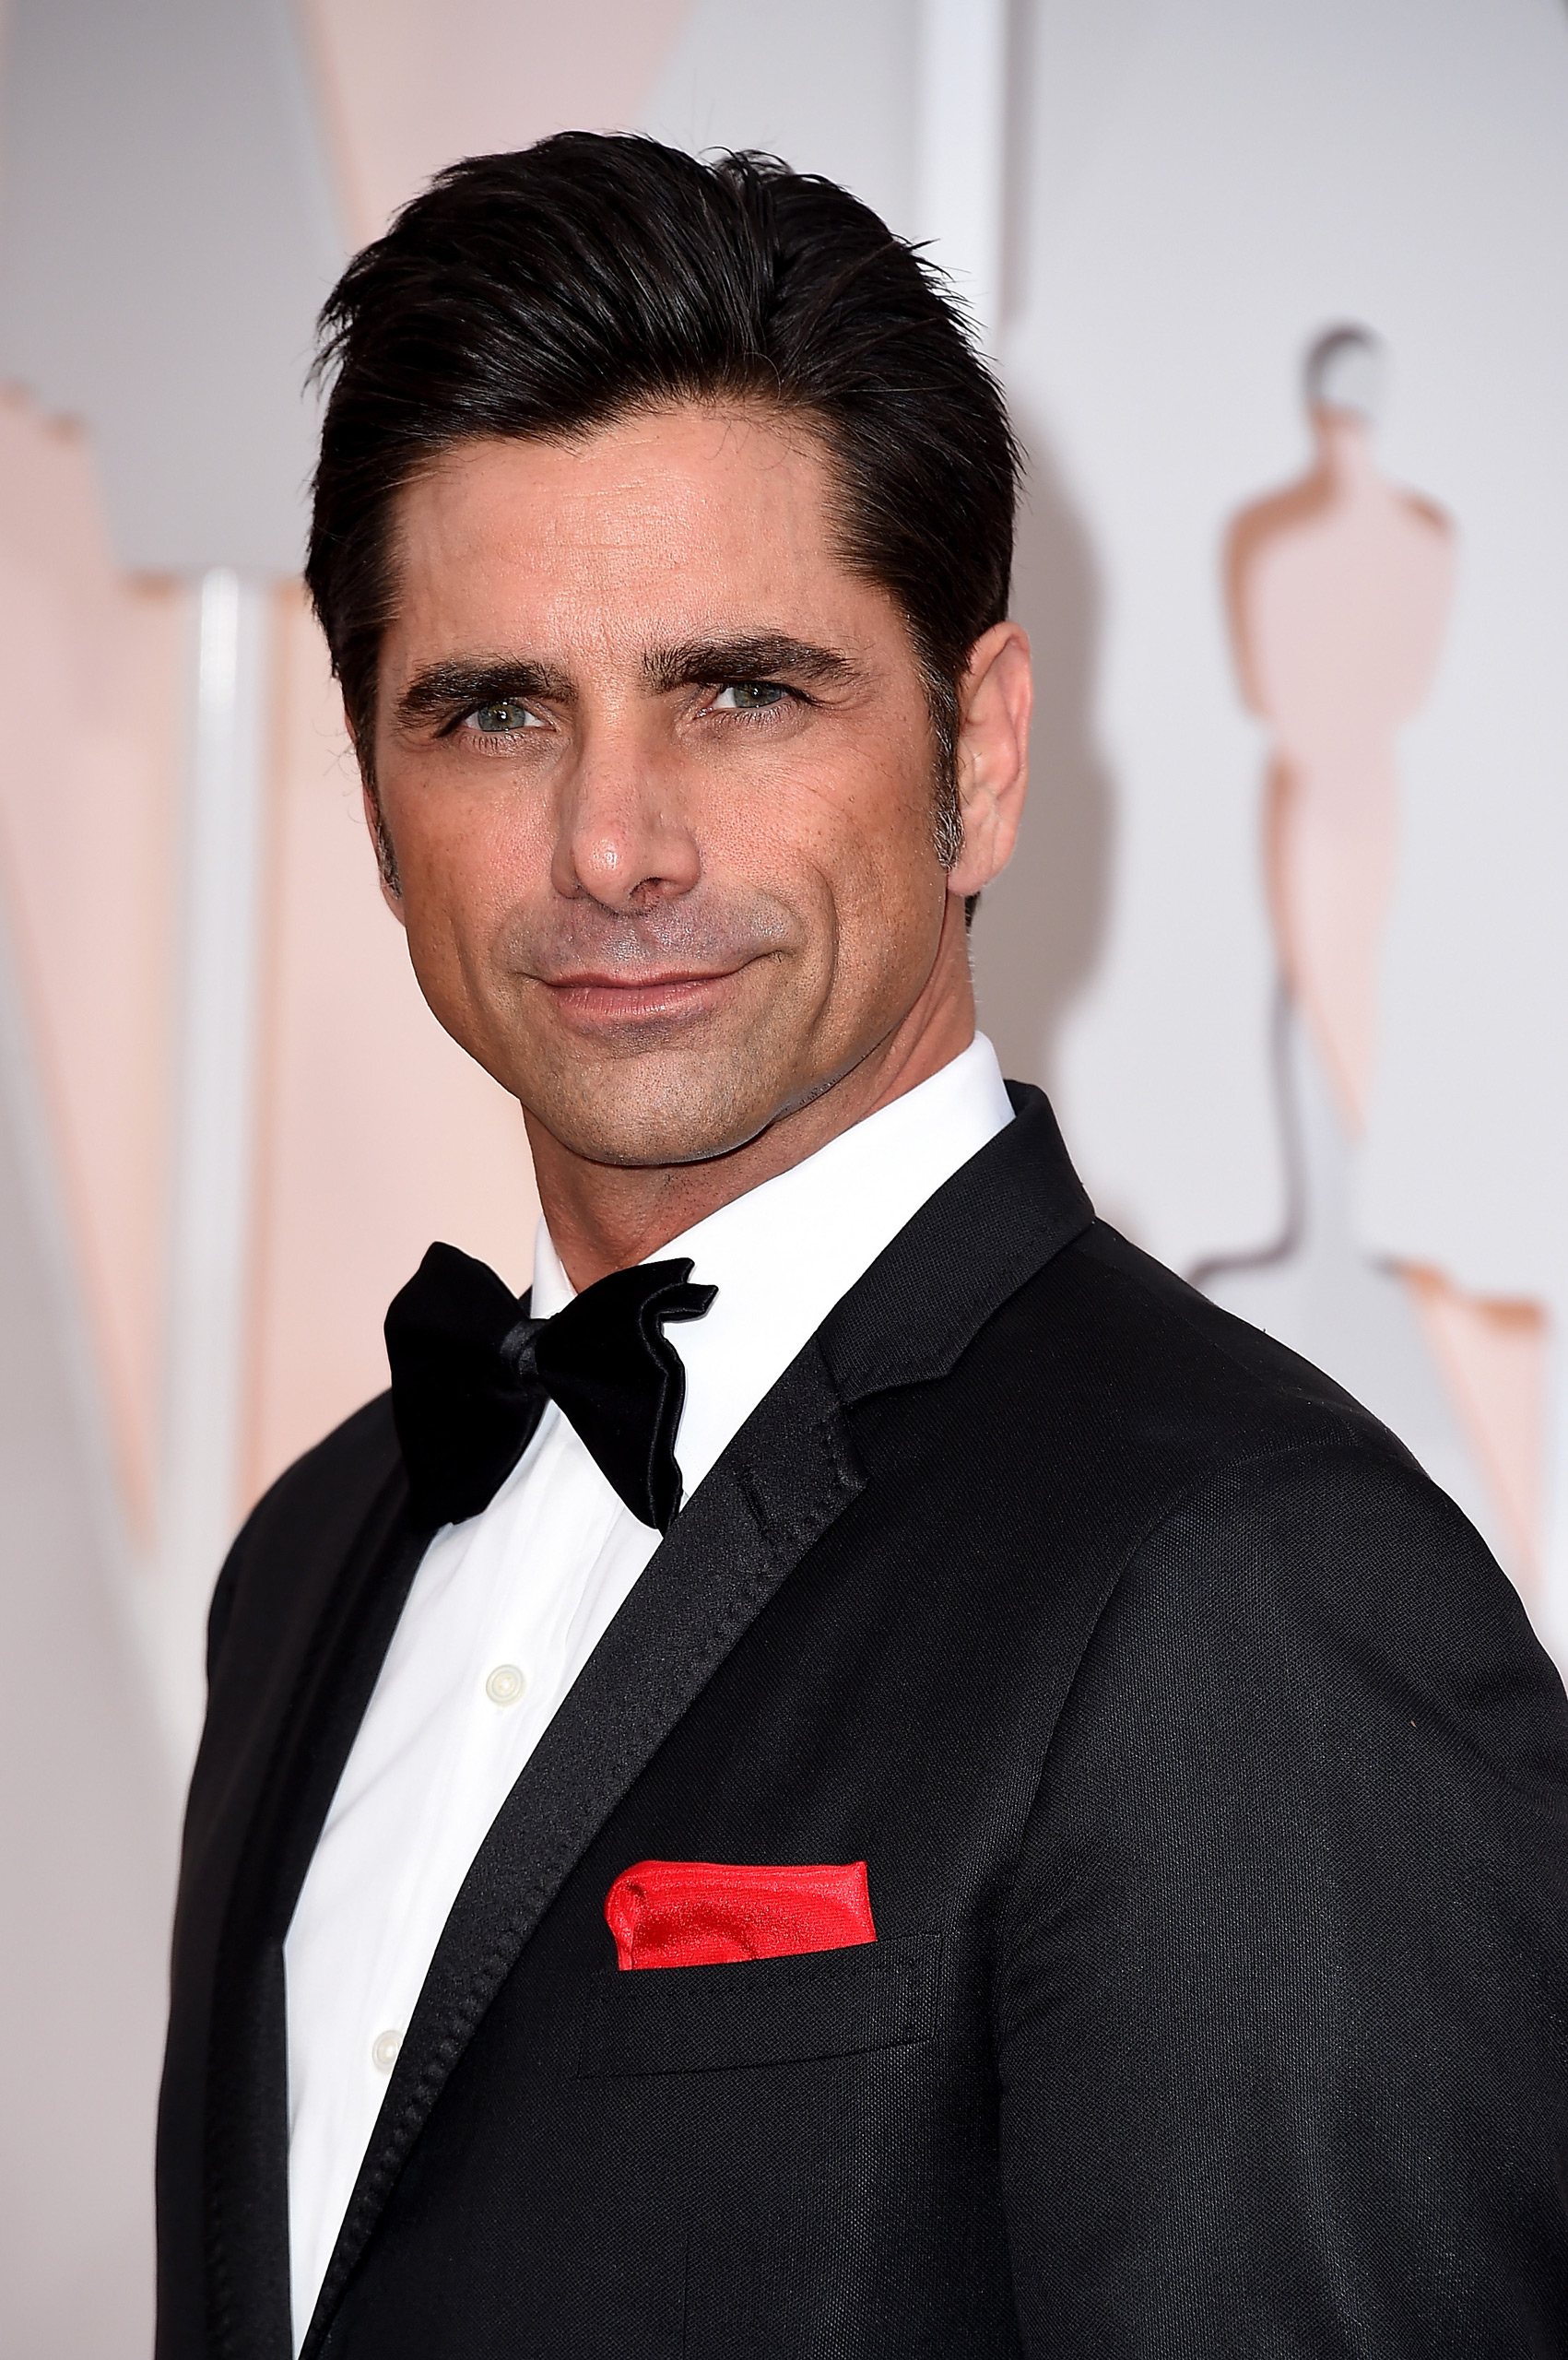 John Stamos attends the 87th Annual Academy Awards on Feb. 22, 2015 in Hollywood, Calif.